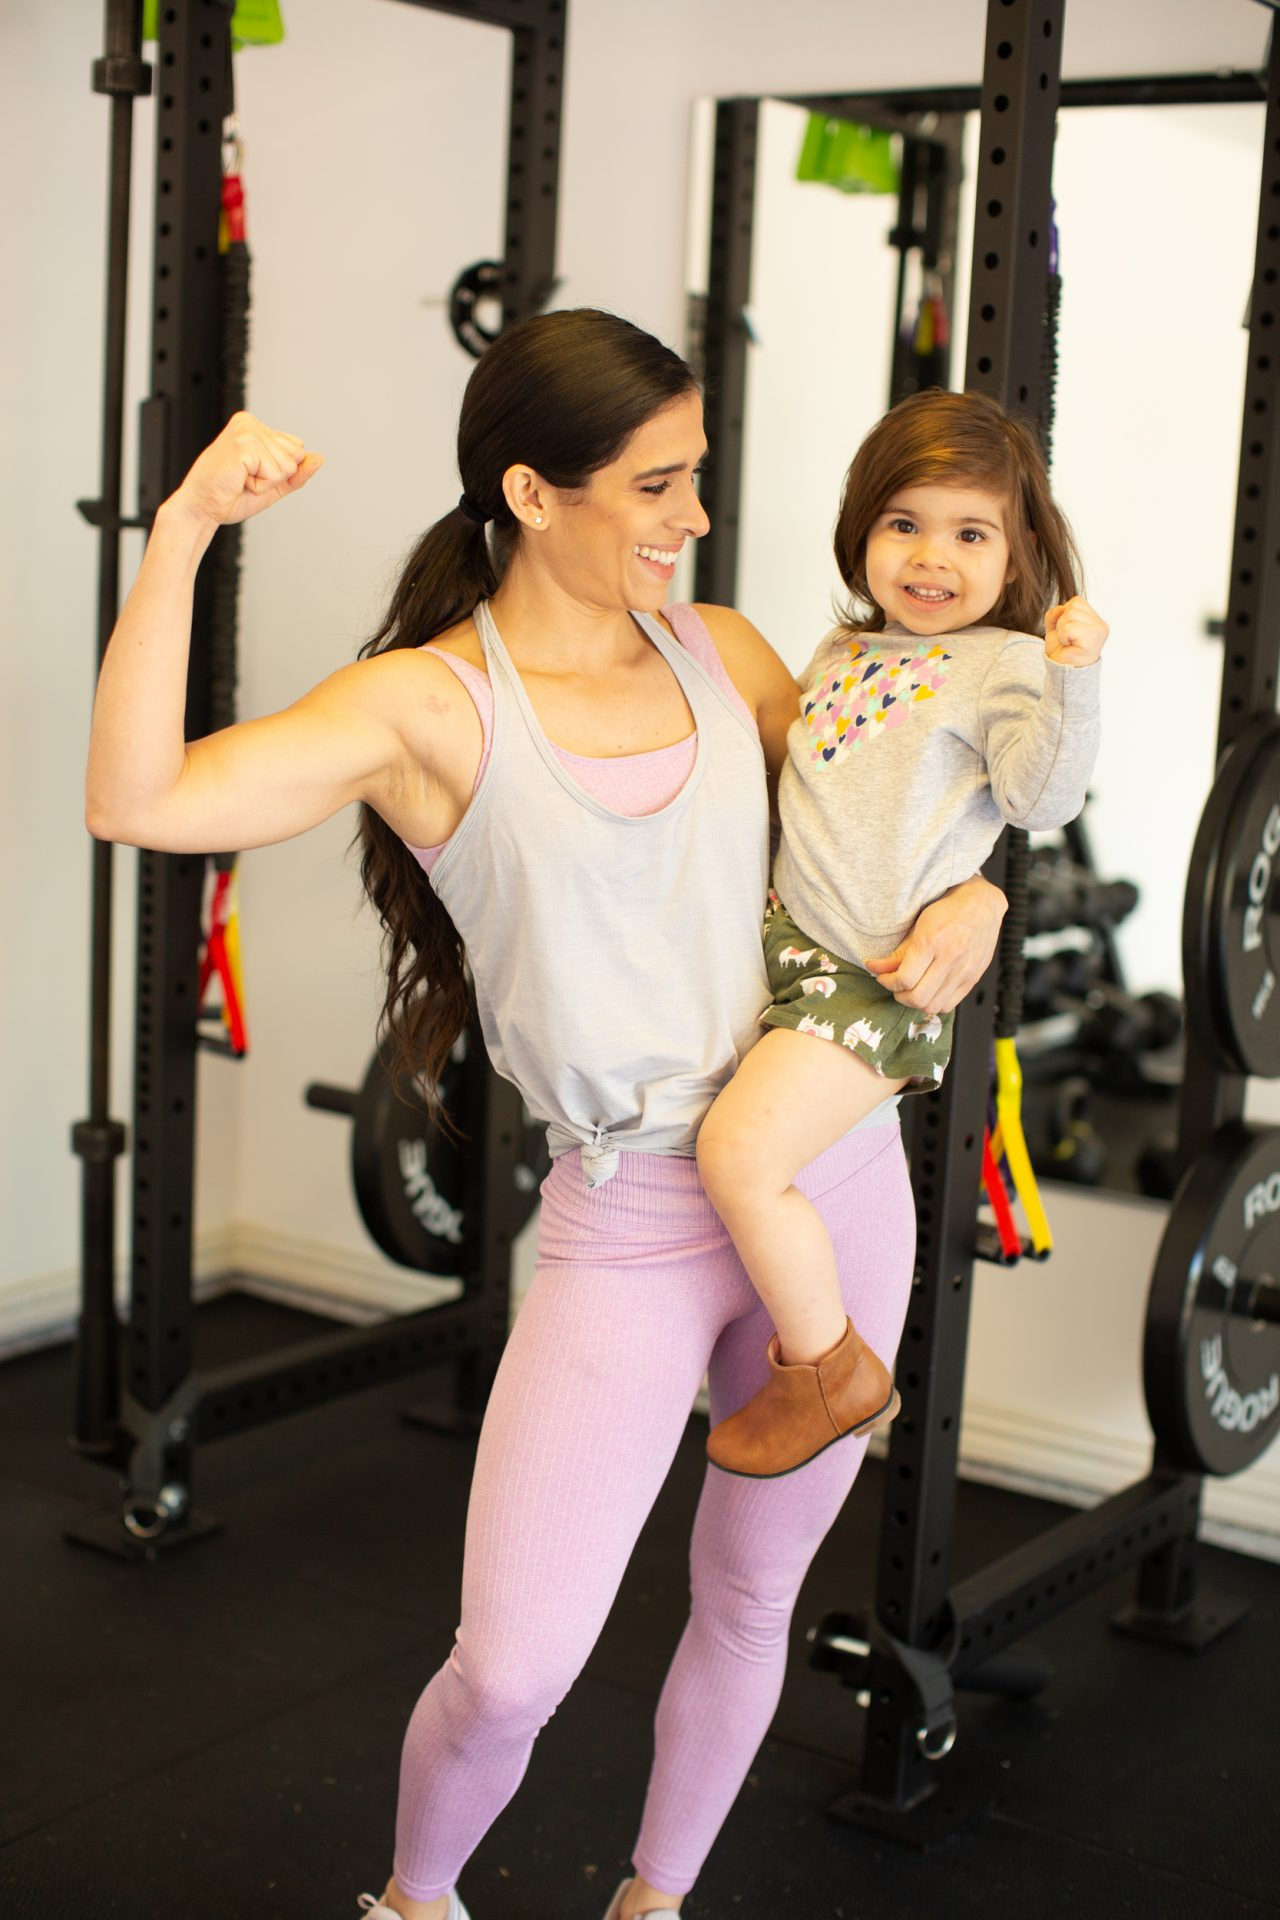 lose weight after kids, get fit after babies, fitness after pregnancy, postpartum fitness